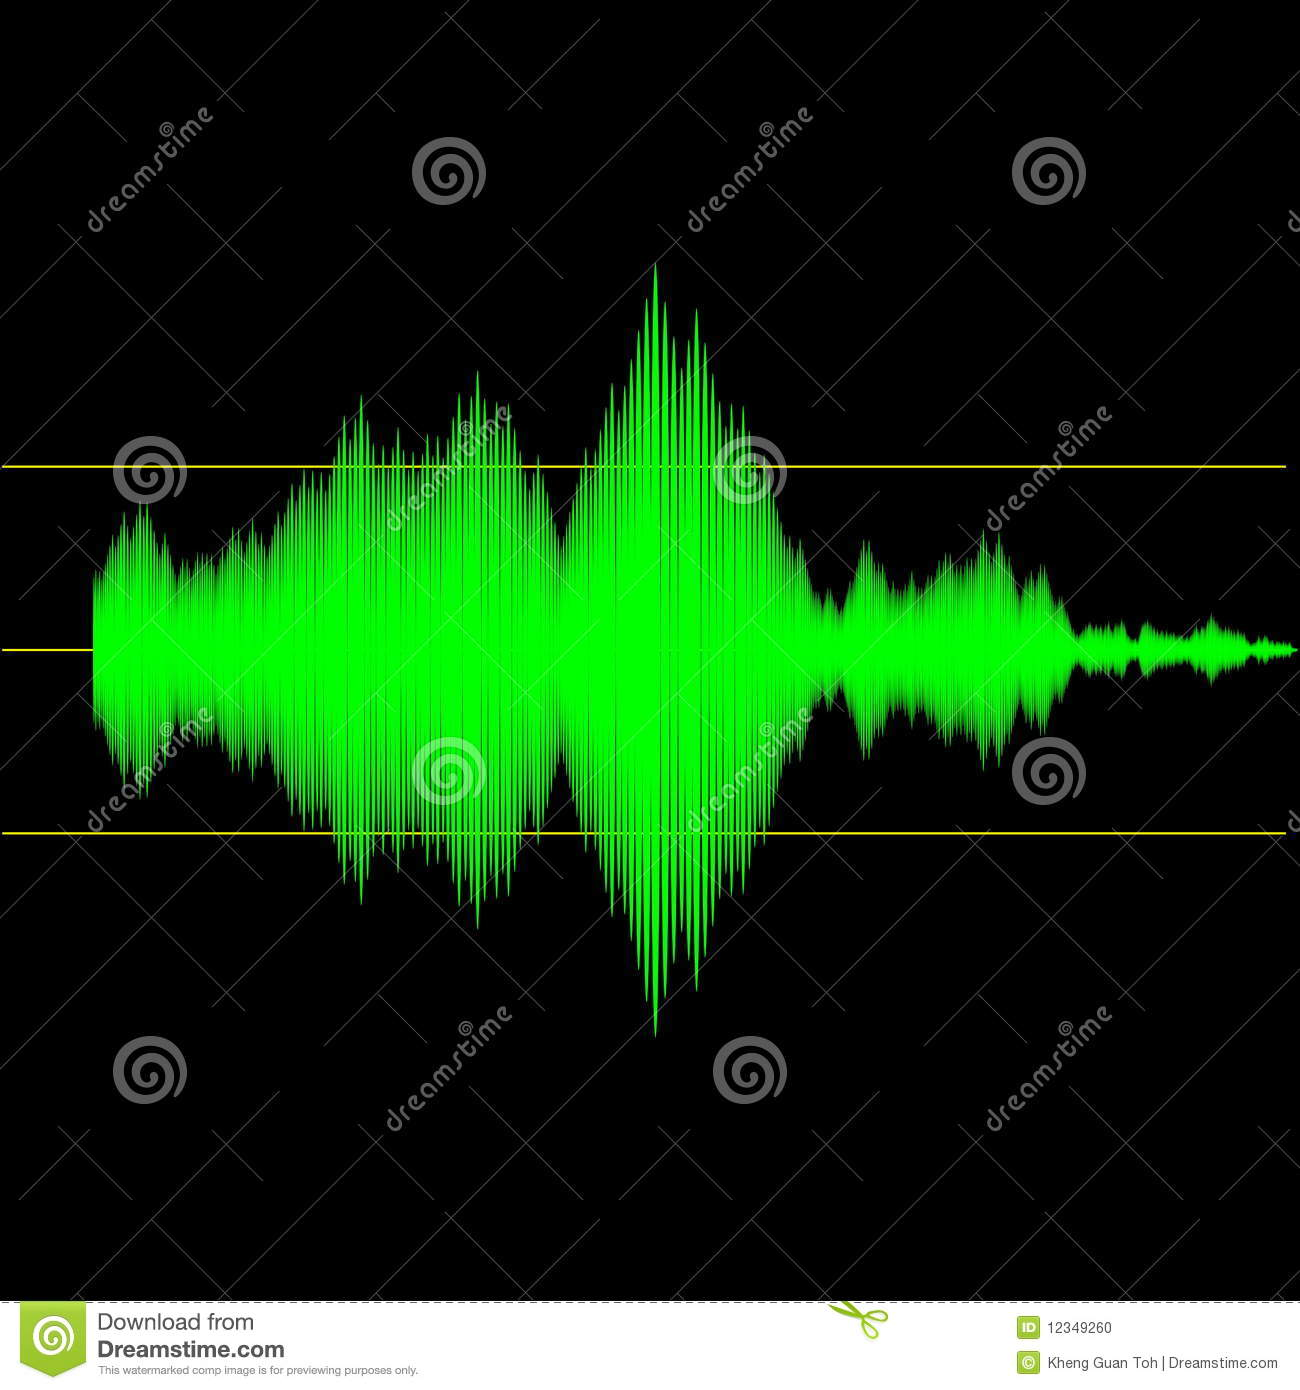 Acoustic Sound Waves : Audio sound wave measurement stock photo image